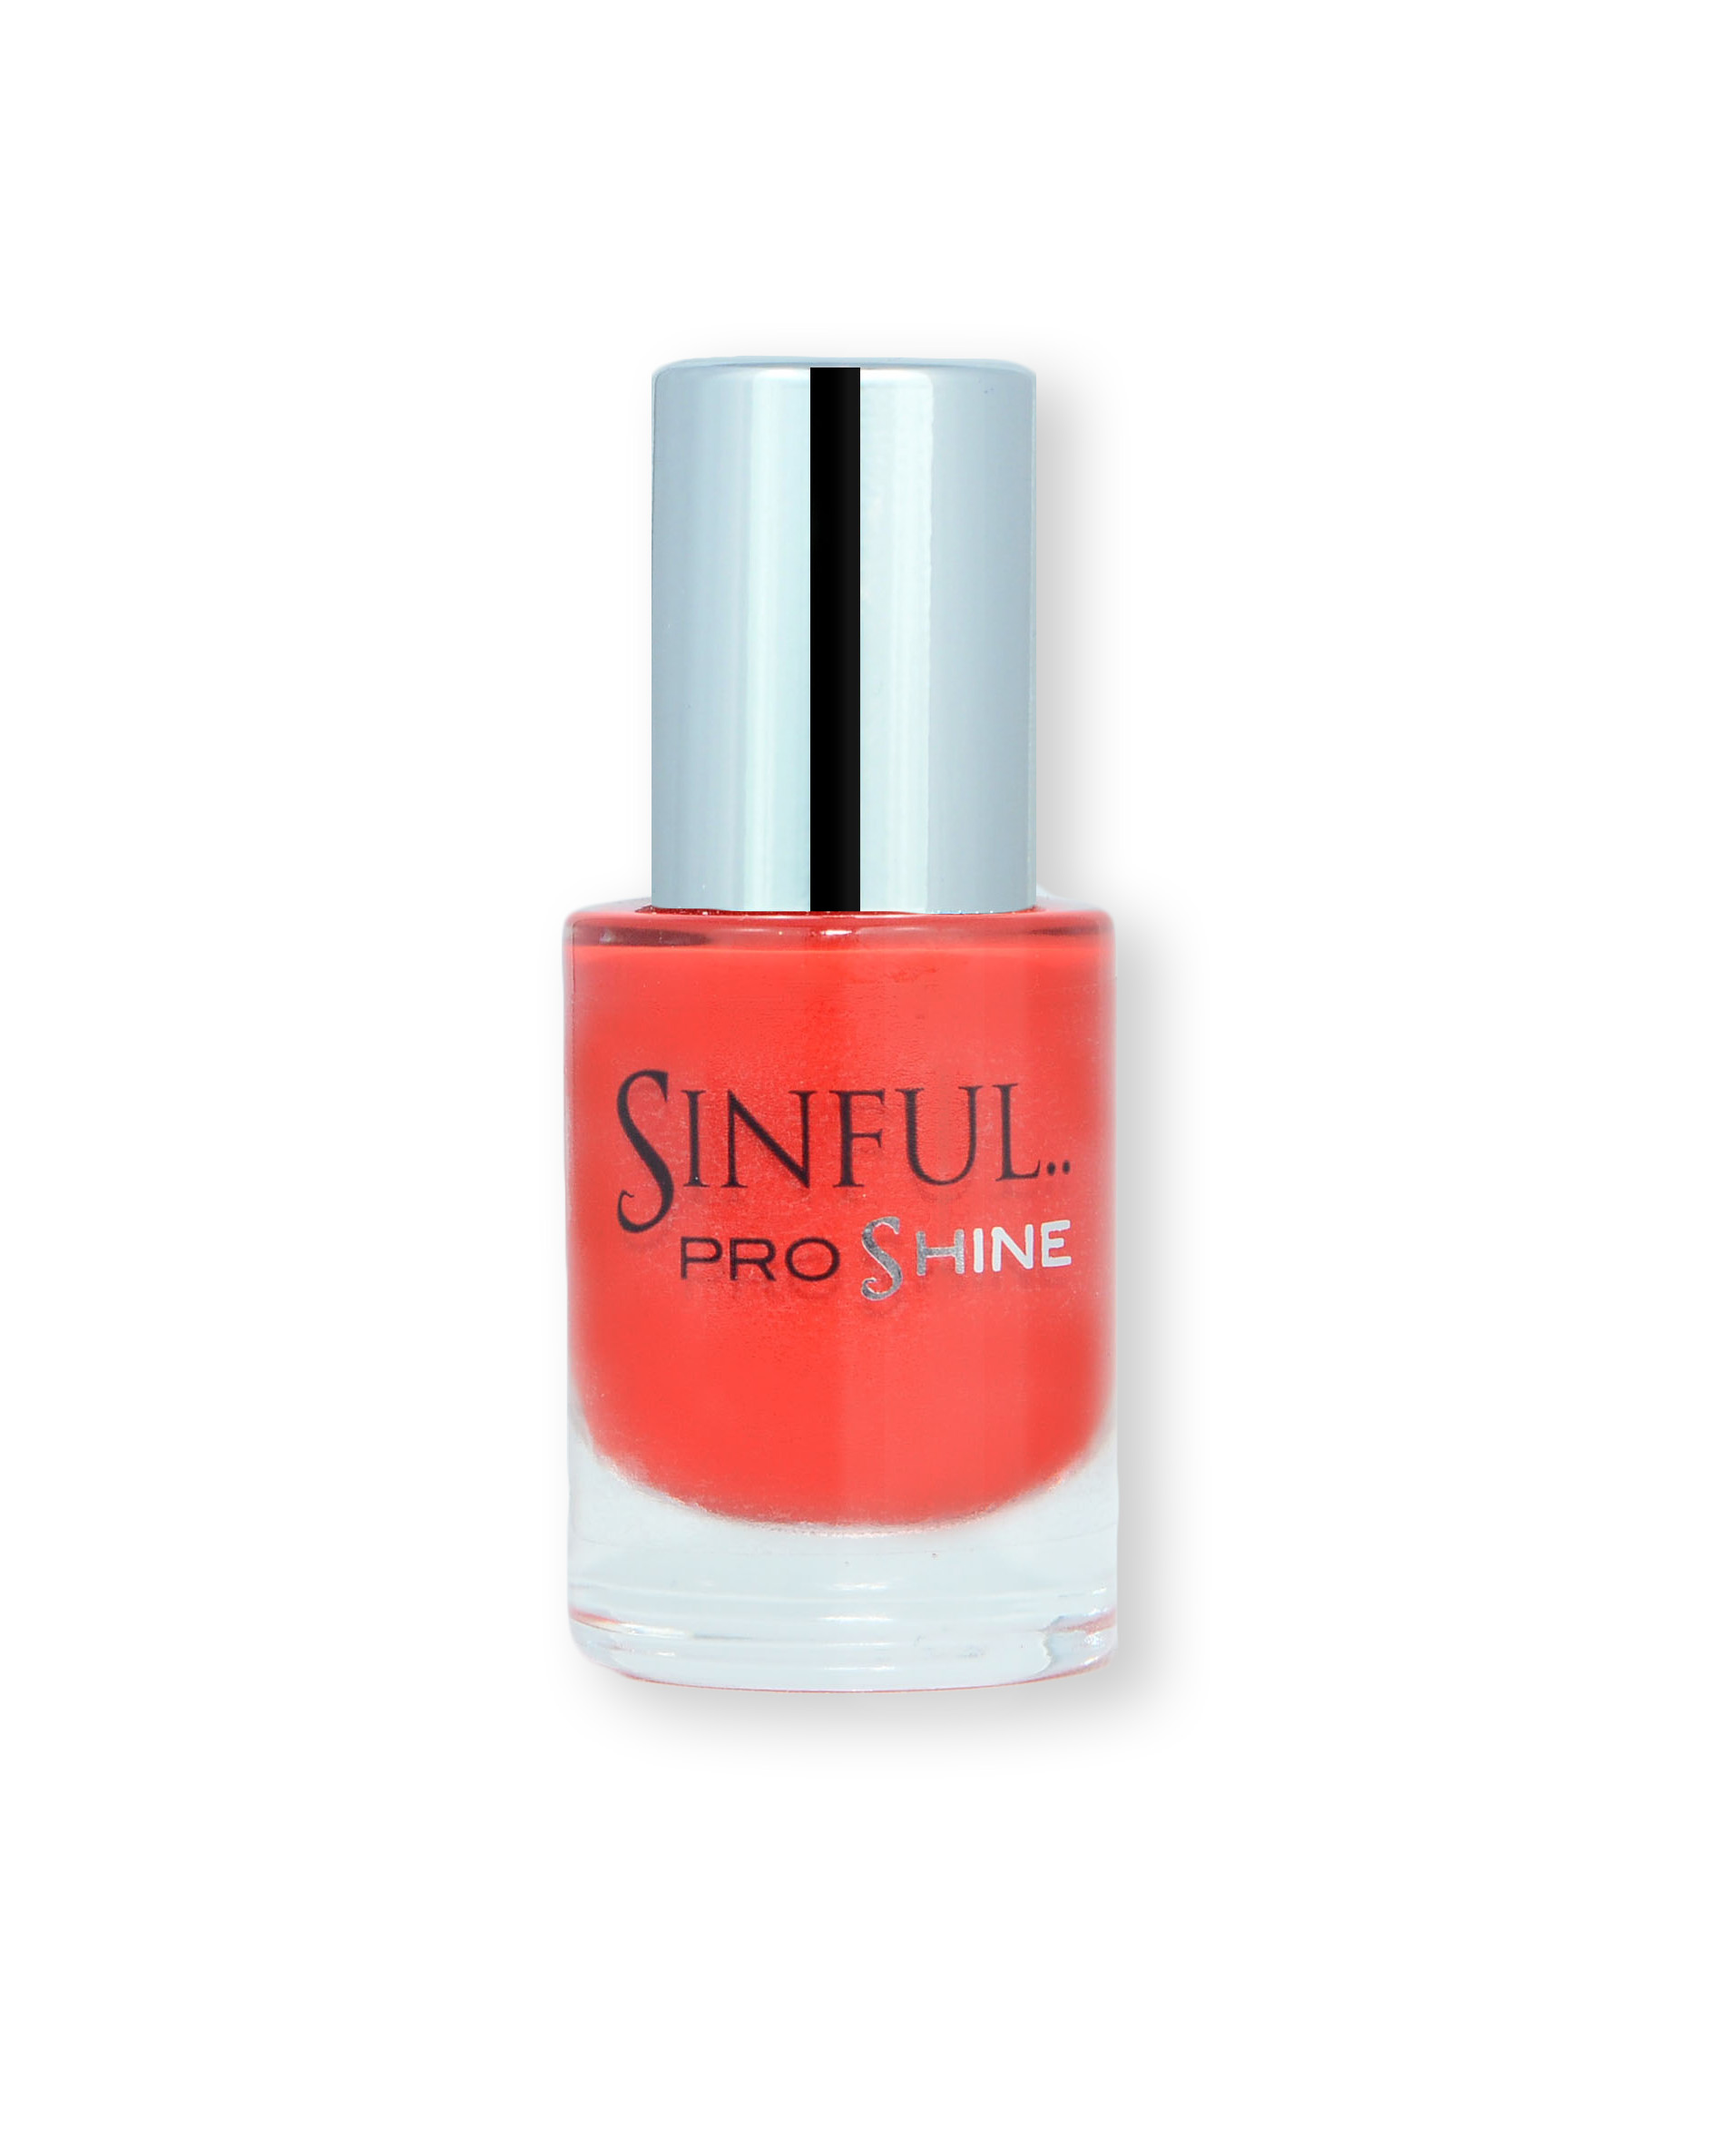 Sinful PROshine is a revolution into top spec imitation gel-like formula, easy application, full coverage and a sleek finish. Spoil yourself with the choice of 42 shades, expertly formulated with the finest grade of pigments. Straight to Bed: Bright scarlet red with a creme finish